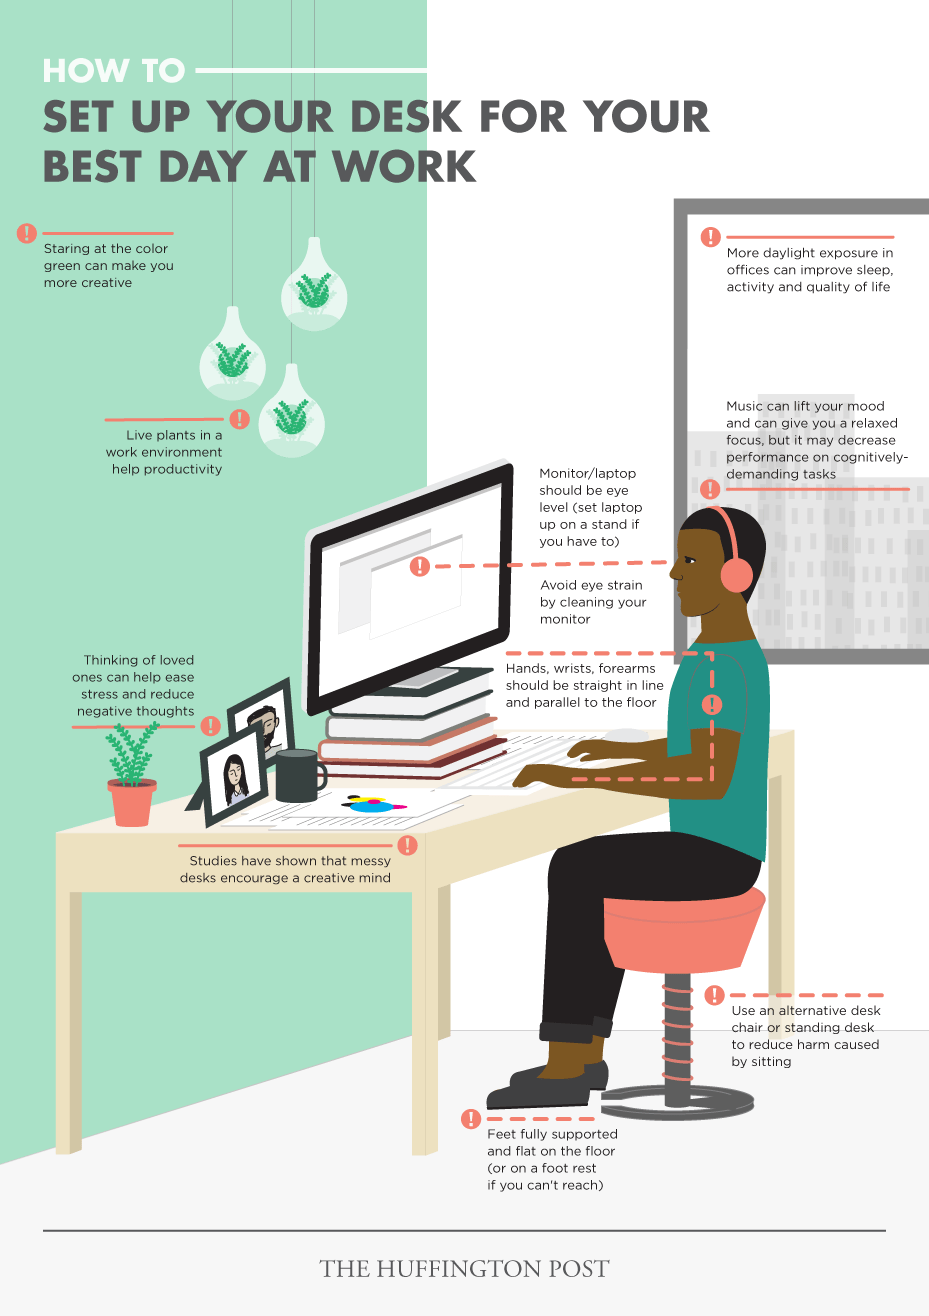 How To Set Up Your Desk For Your Best Day At Work  Huffpost